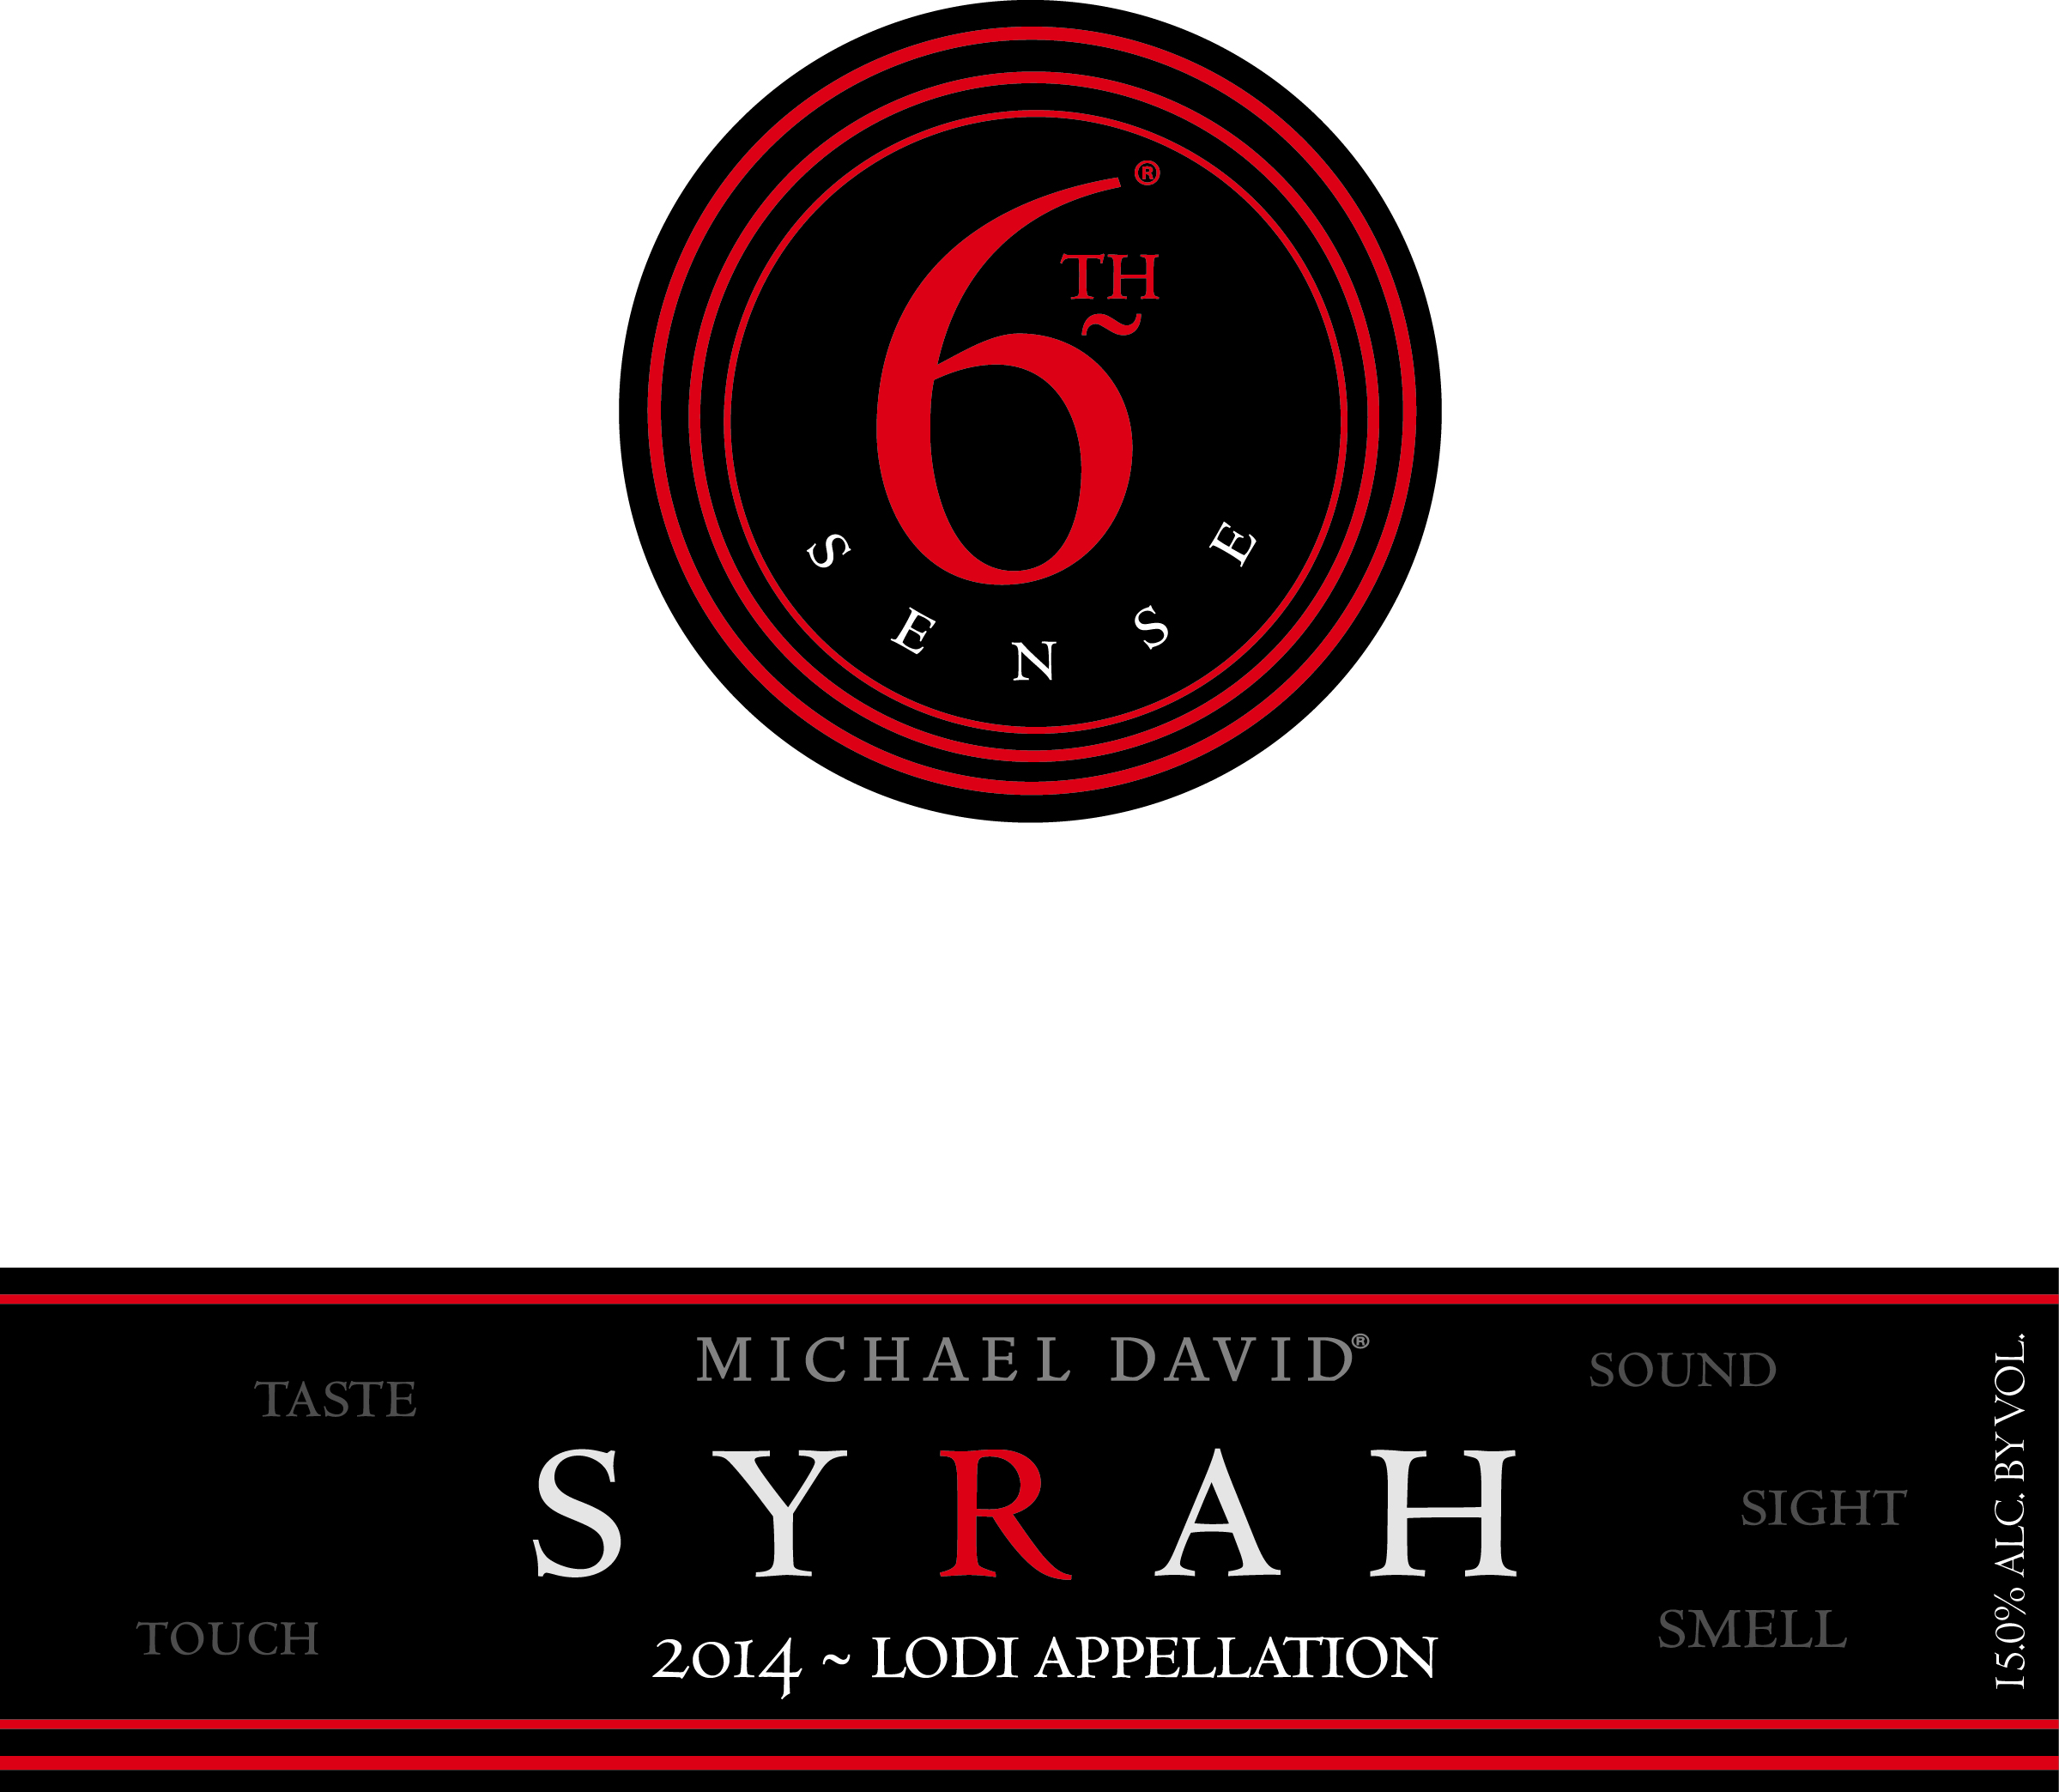 Michael David Syrah 6th Sense